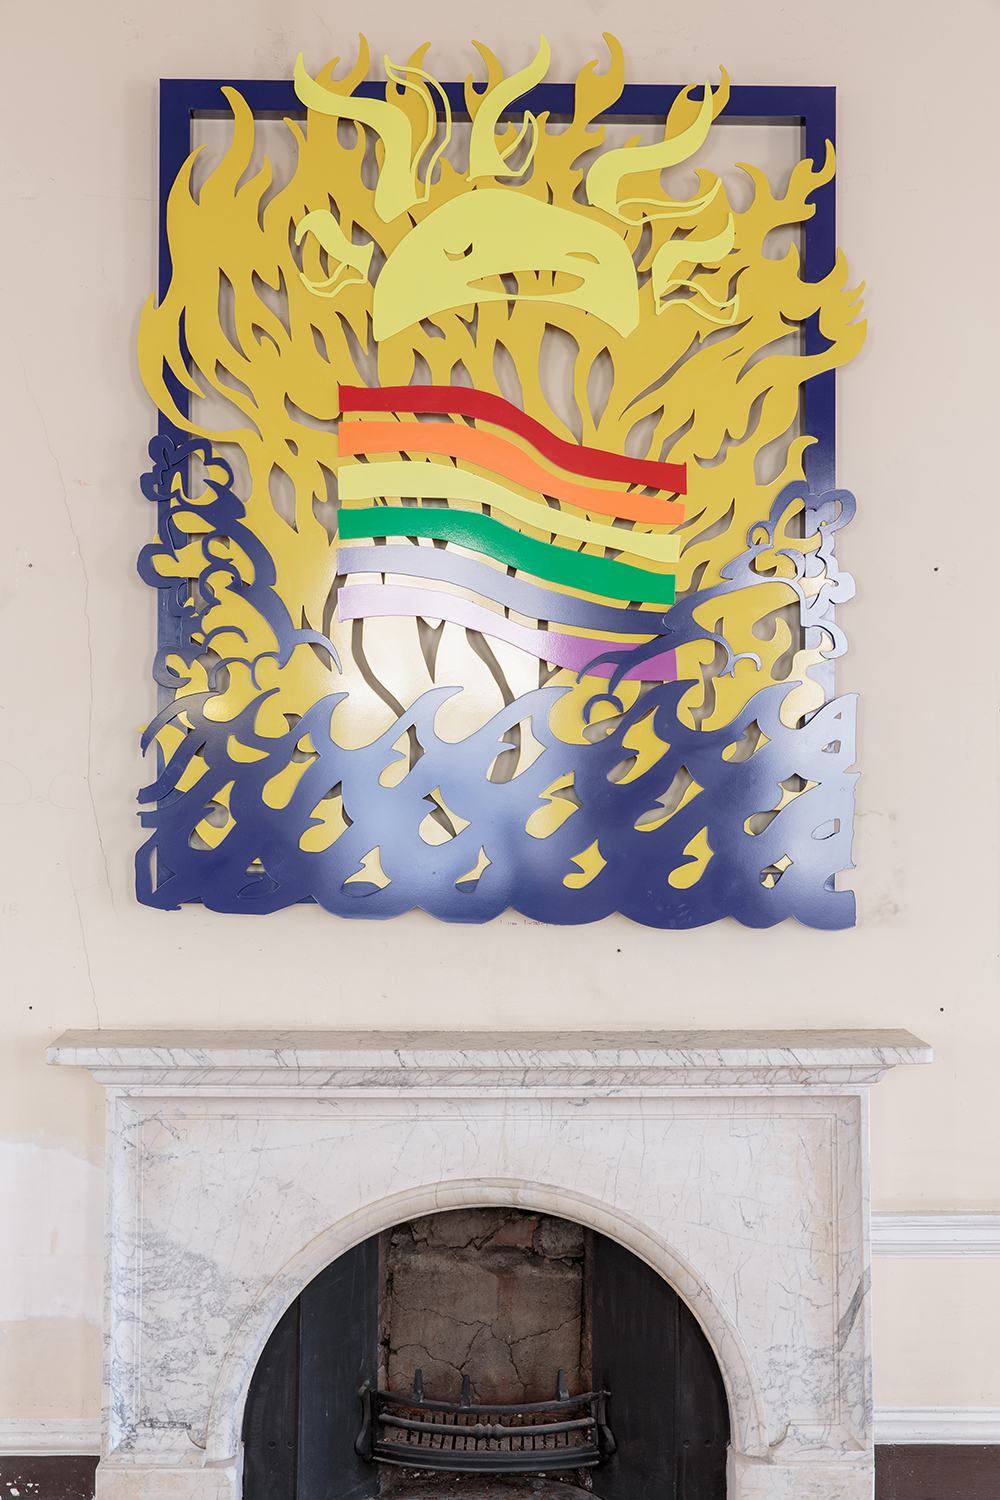 Installation view of UK Gay Bar Directory. The image shows an artwork on the wall above a fireplace, depicting smiling sun and a rainbow flag.